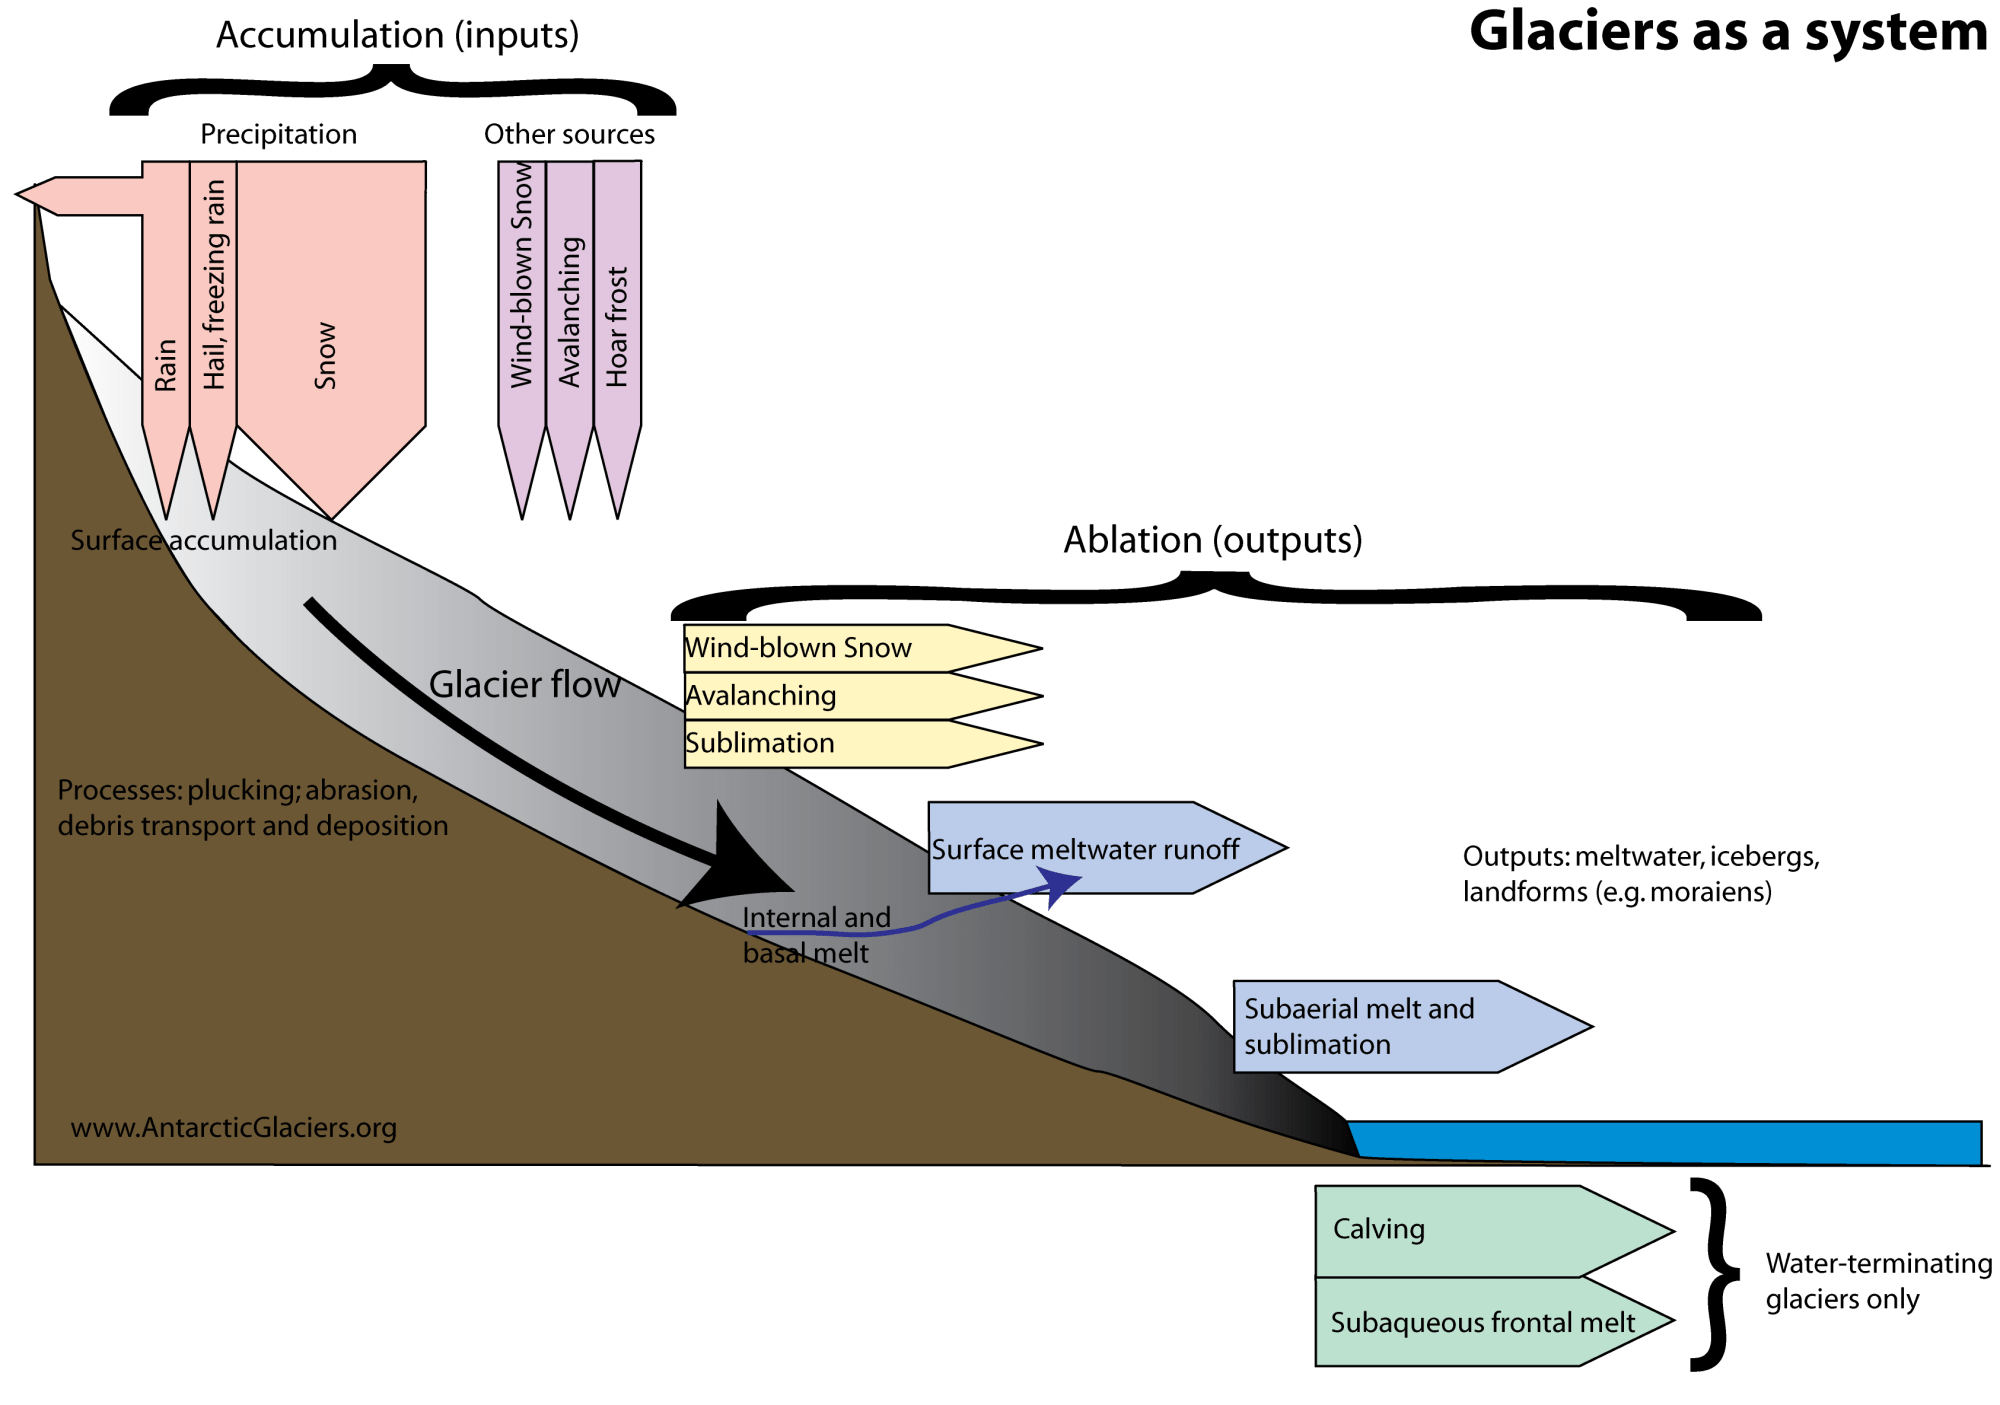 hight resolution of inputs are largely from precipitation and also from wind blown snow and avalanches the glacier loses mass ablates mainly by the processes of calving and